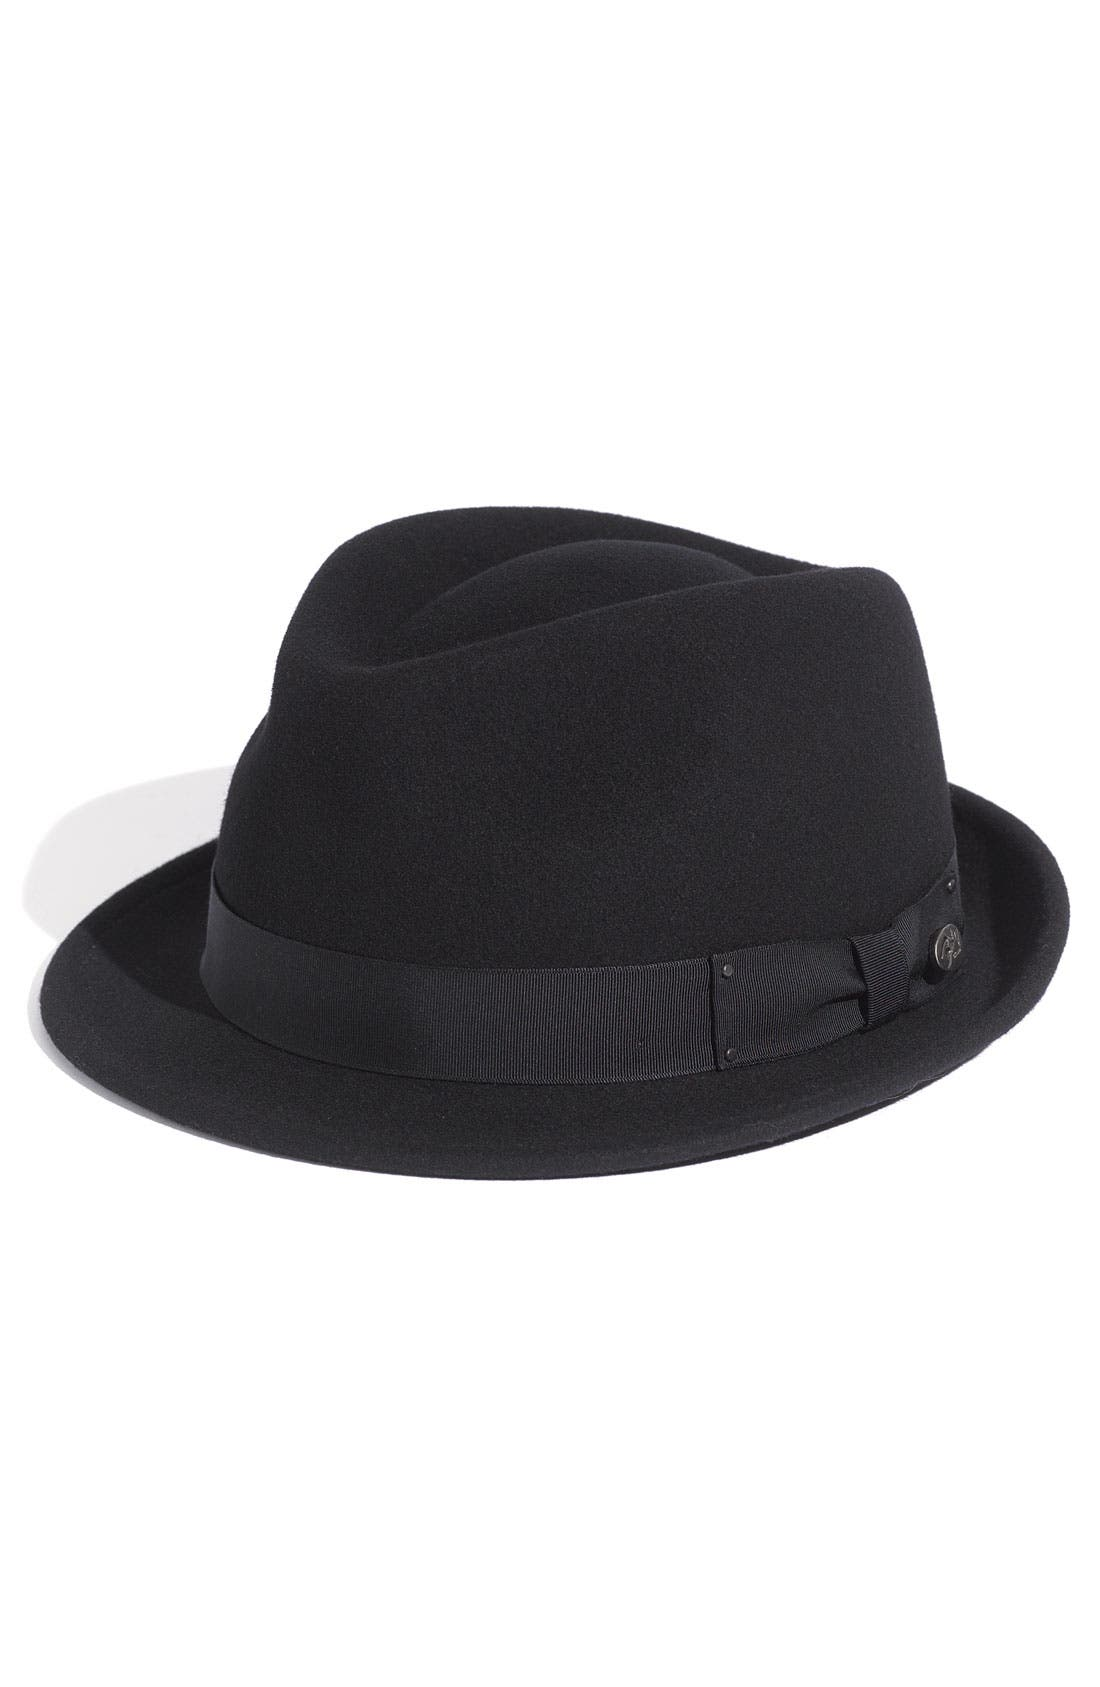 Alternate Image 1 Selected - Bailey 'Wynn' Packable Fedora